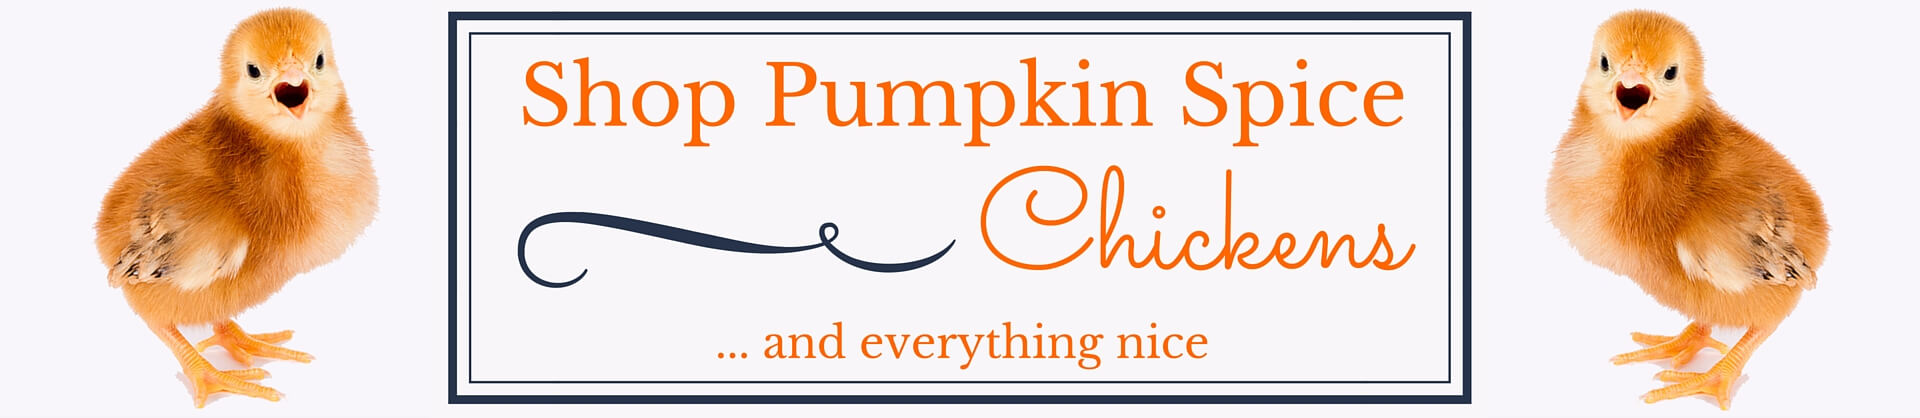 Shop Pumpkin Spice Chickens Today